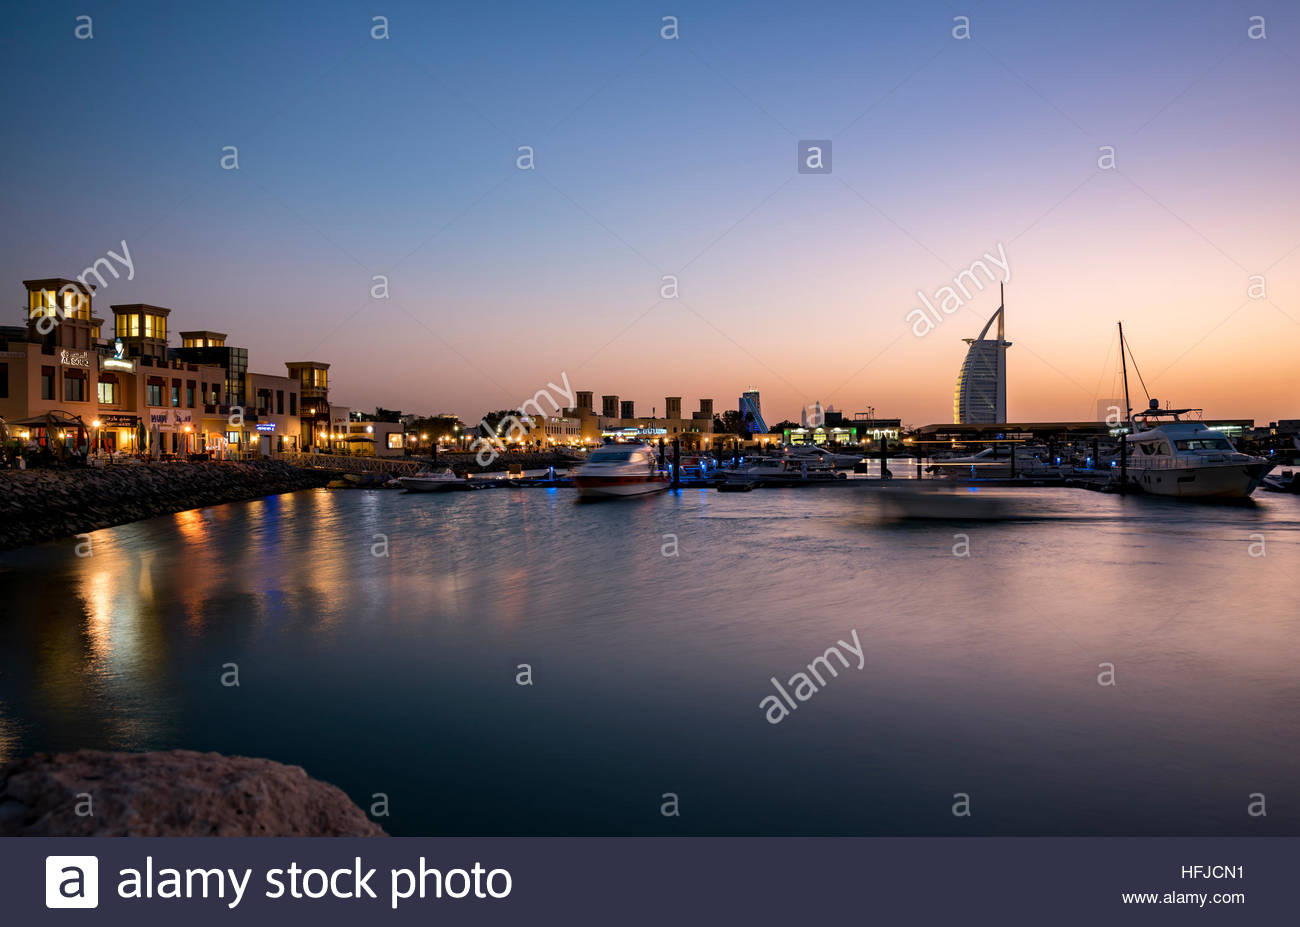 View of 'Al Souq', Fishing Harbor, Dubai. Picture taken during a sunset with clear sky (no clouds) - Stock Image